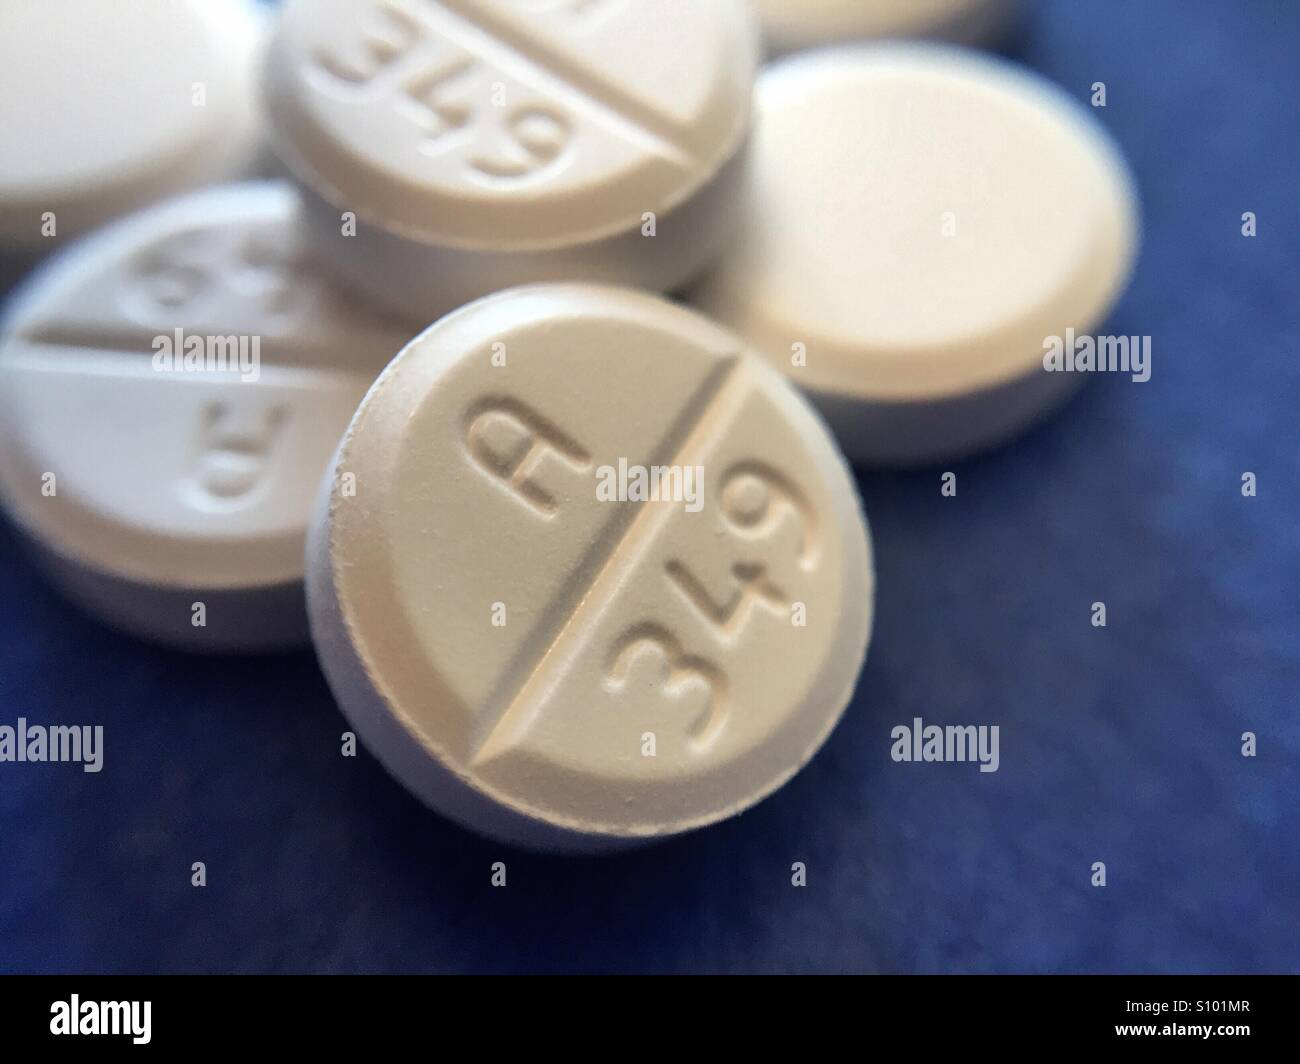 percocet Percocet is the brand name for acetaminophen and oxycodone it is also in a group of drugs called narcotic pain relievers it is a powerful narcotic that is often used to treat moderate to severe pain the narcotic works by binding to the opioid receptors found in the brain and spinal cord.